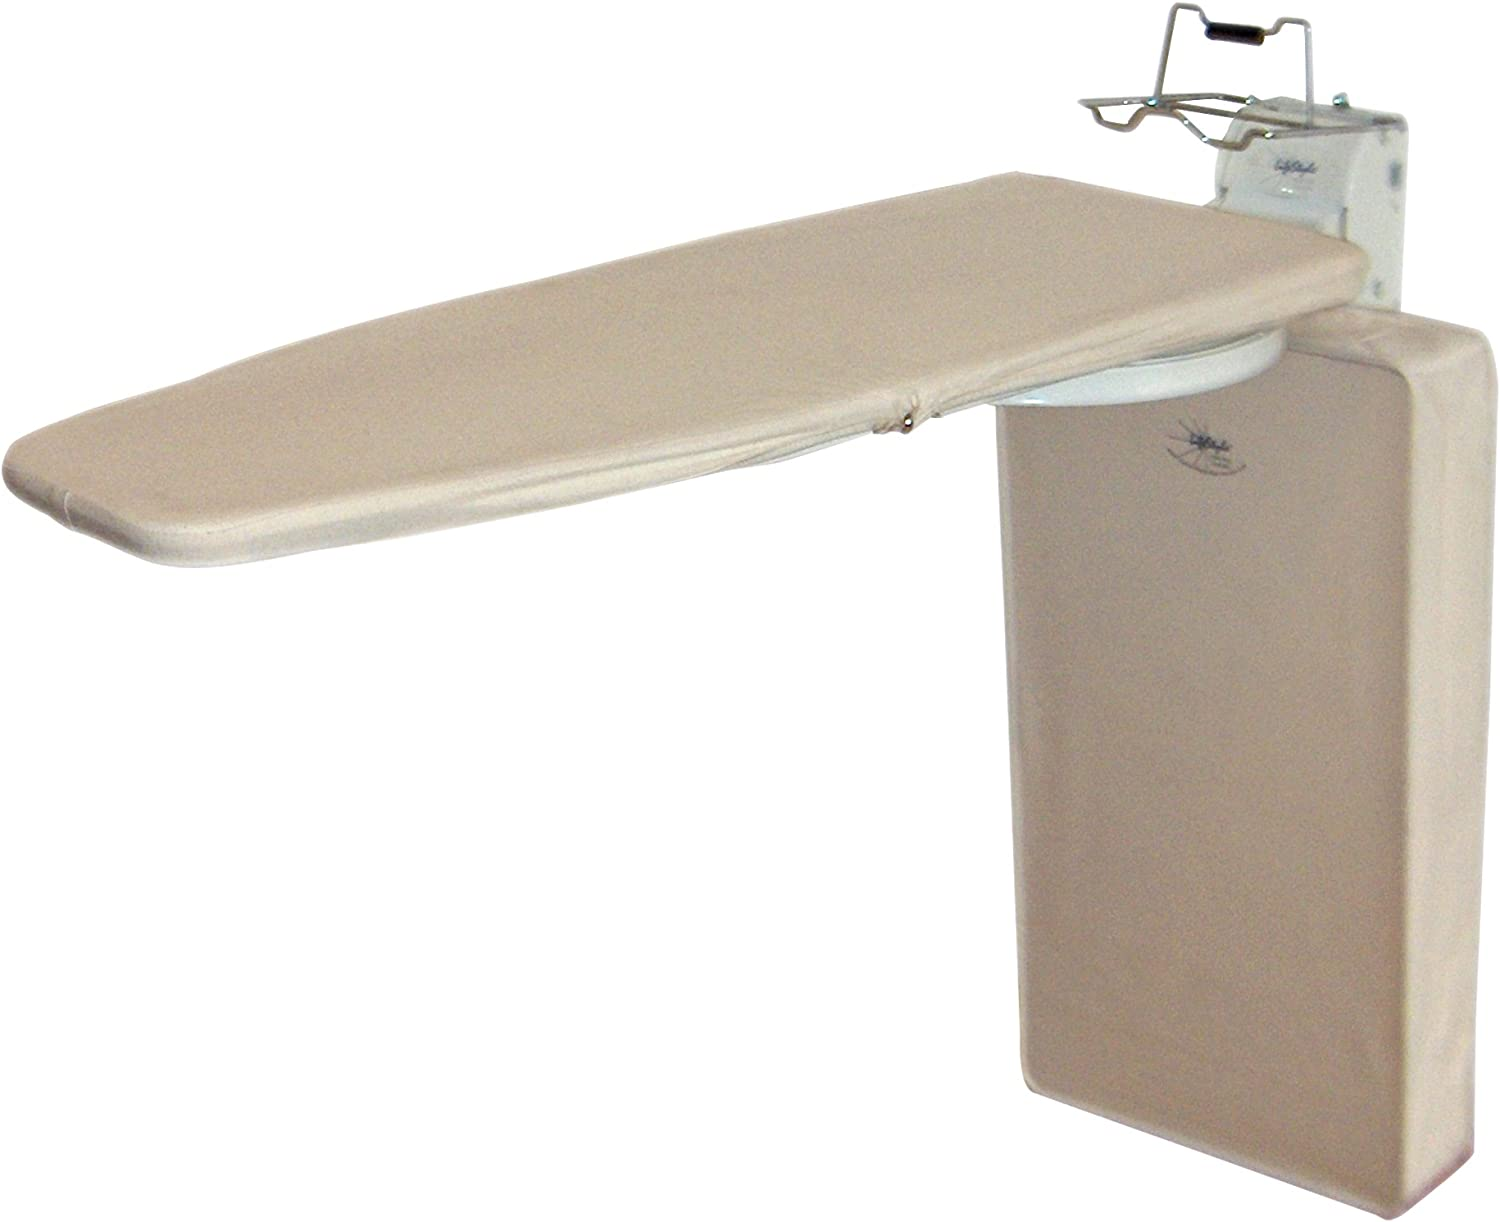 B001DQA9F6 Lifestyle OSUV-01 Vertical Size Wall Mounted Ironing Center 71h4tDgkR3L.SL1500_